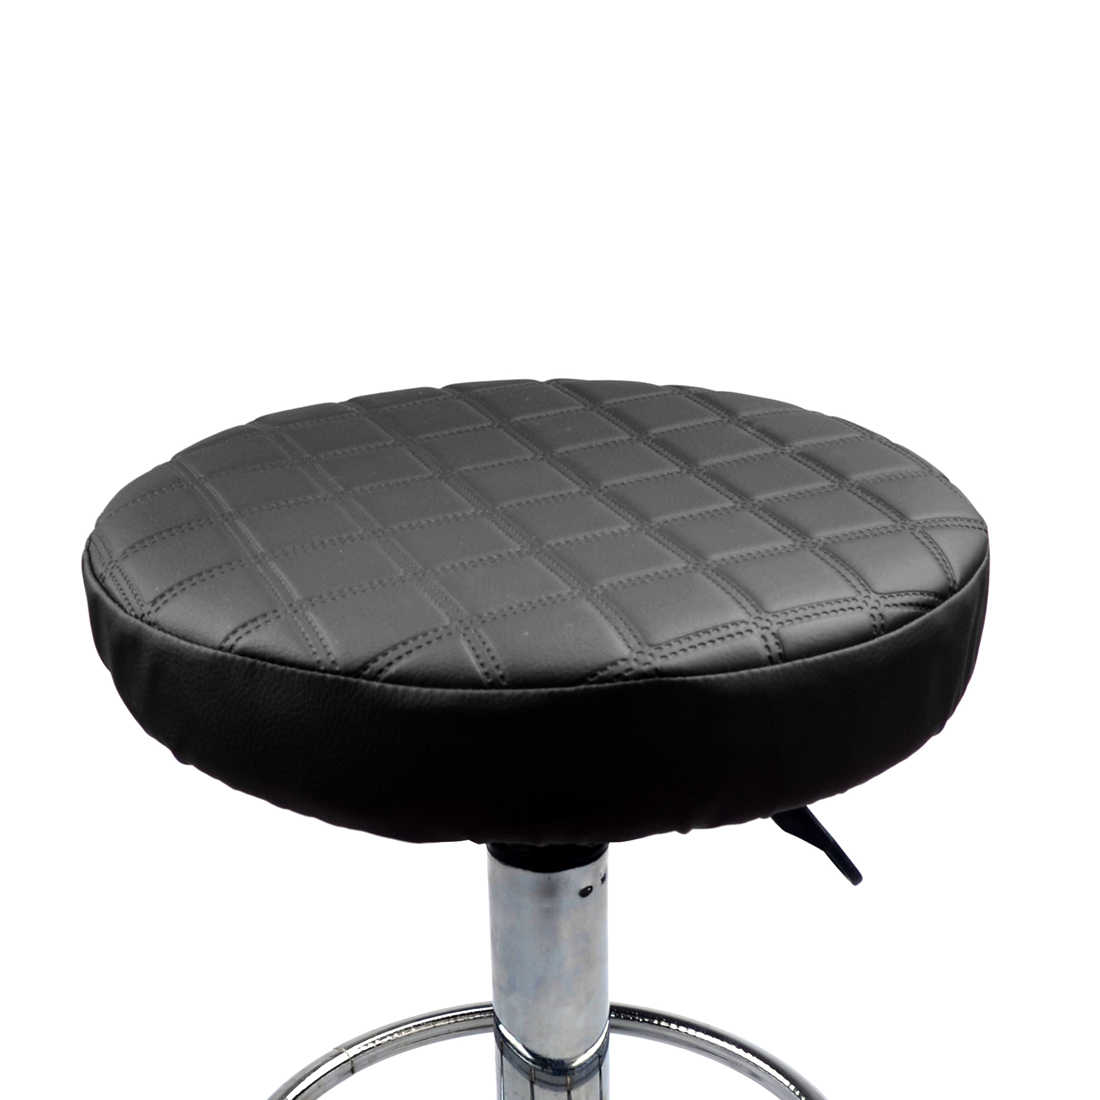 2Pcs Waterproof Barstool Cover Round Office Chair Seat Slipcover for Pub